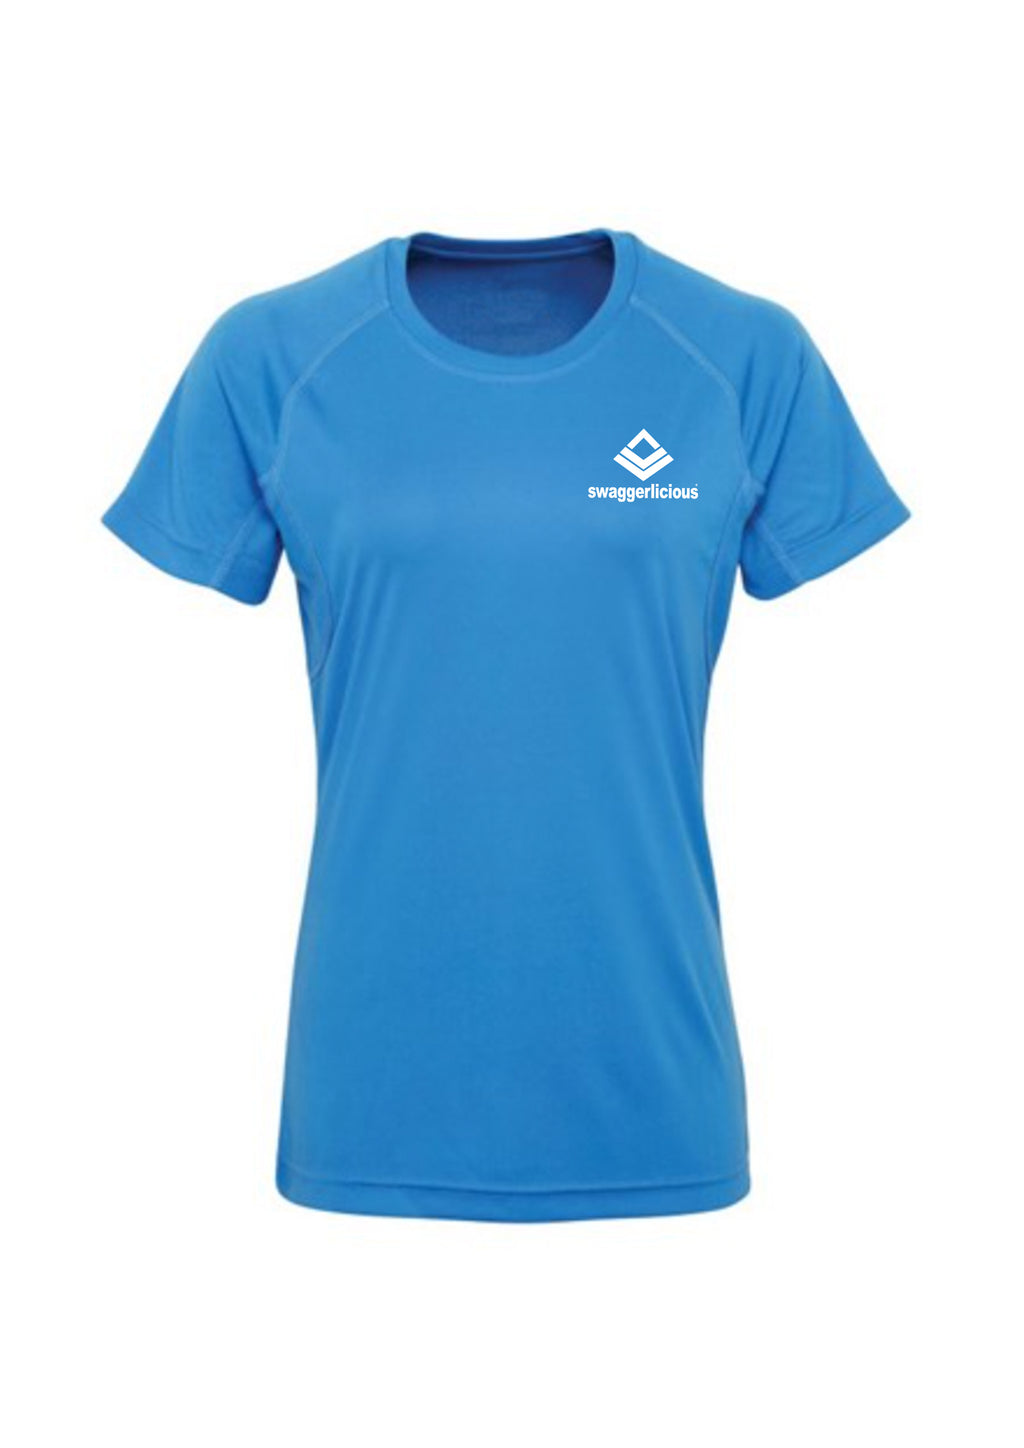 Swaggerlicious Sapphire Active Sports Tee with White Logo